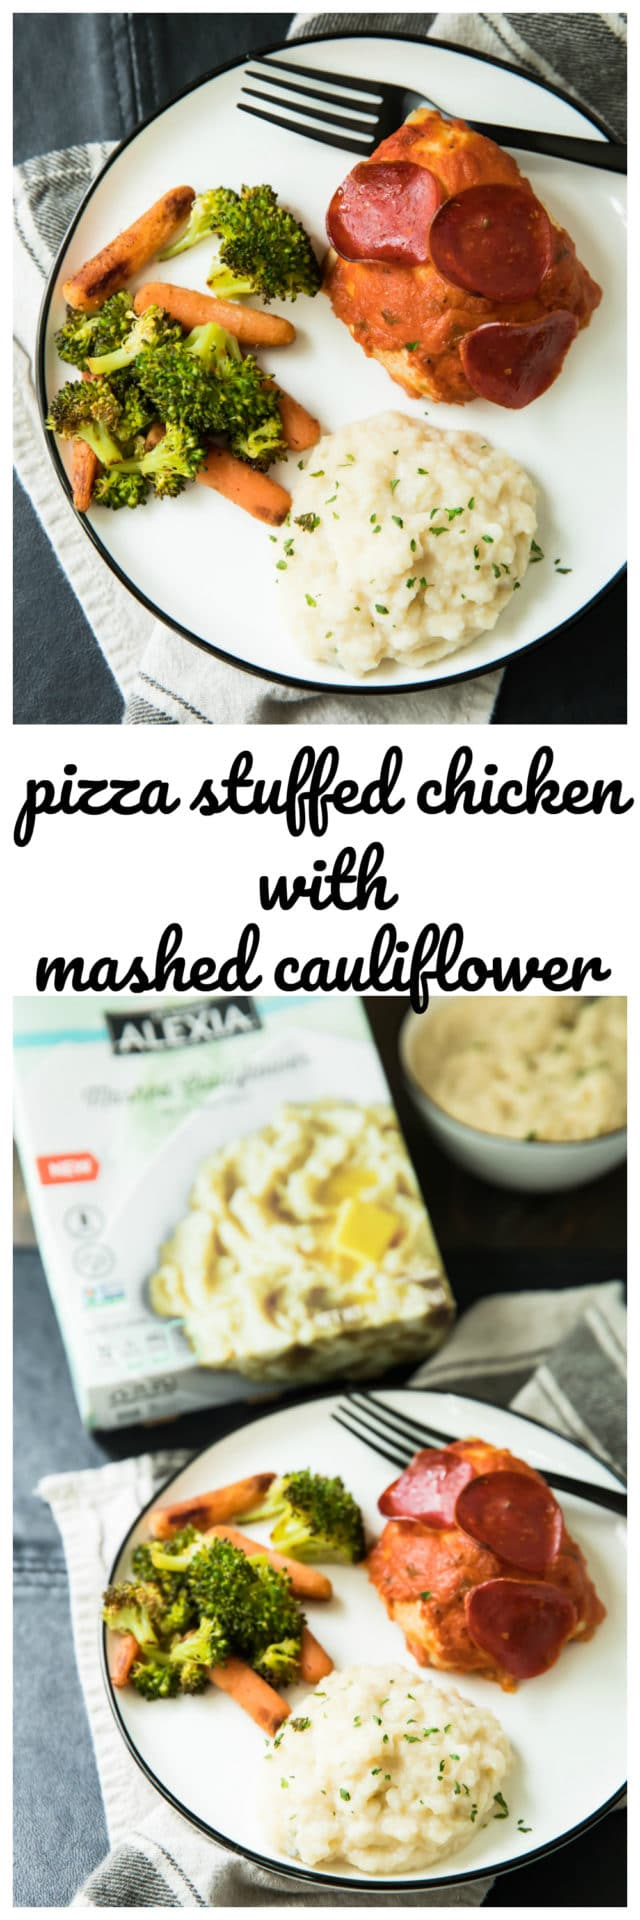 Pizza Stuffed Chicken With Mashed Cauliflower is a complete family-friendly meal withall the delicious flavors of pizza, but with extra protein from the chicken, and none of the empty calories/carbs from the crust!